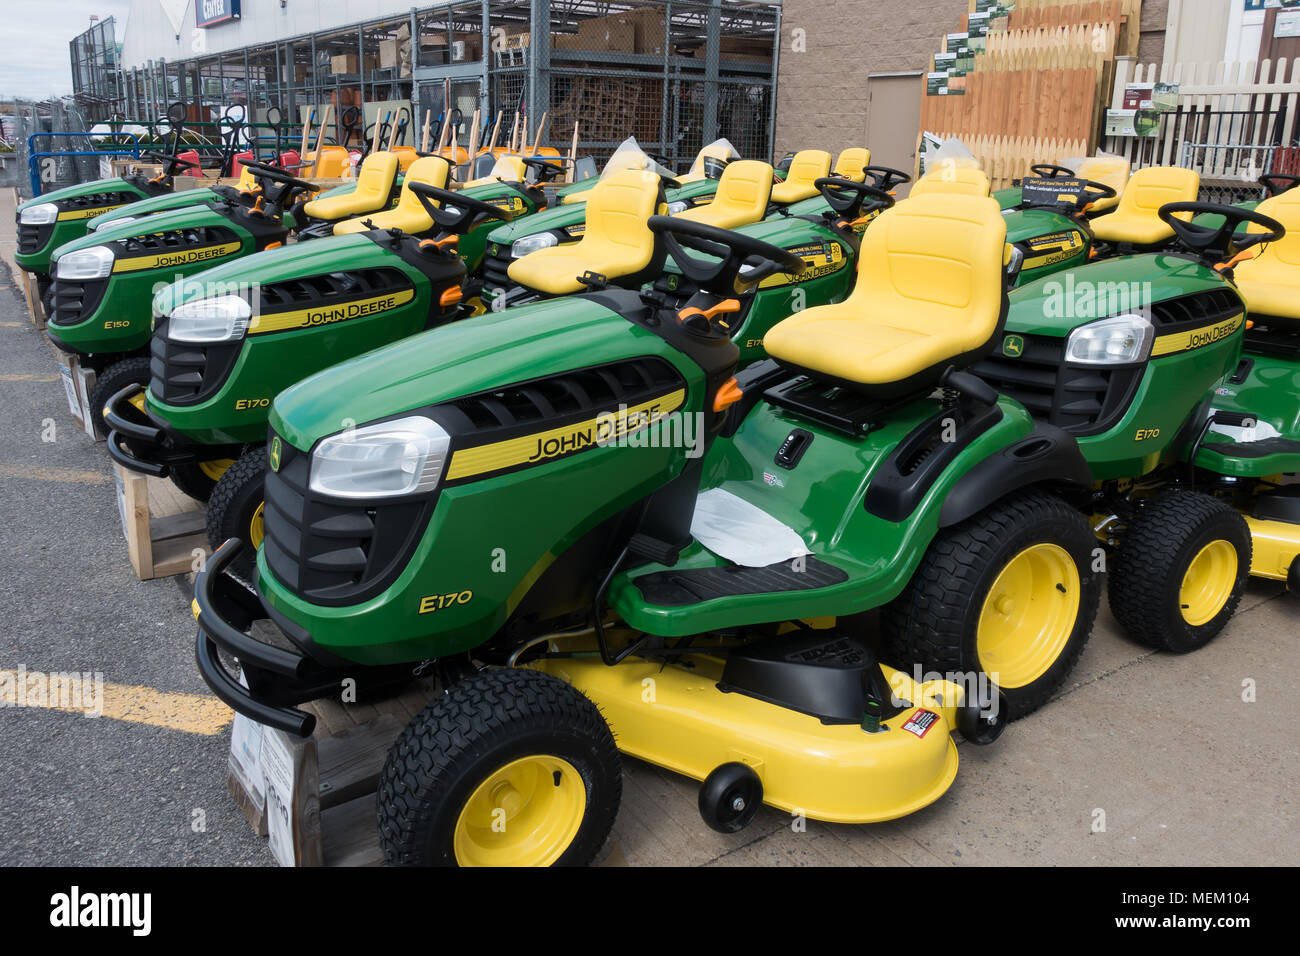 A Selection Of John Deere Lawn Tractors For Sale At A Lowe S Garden Center Store In Amsterdam Ny Stock Photo Alamy